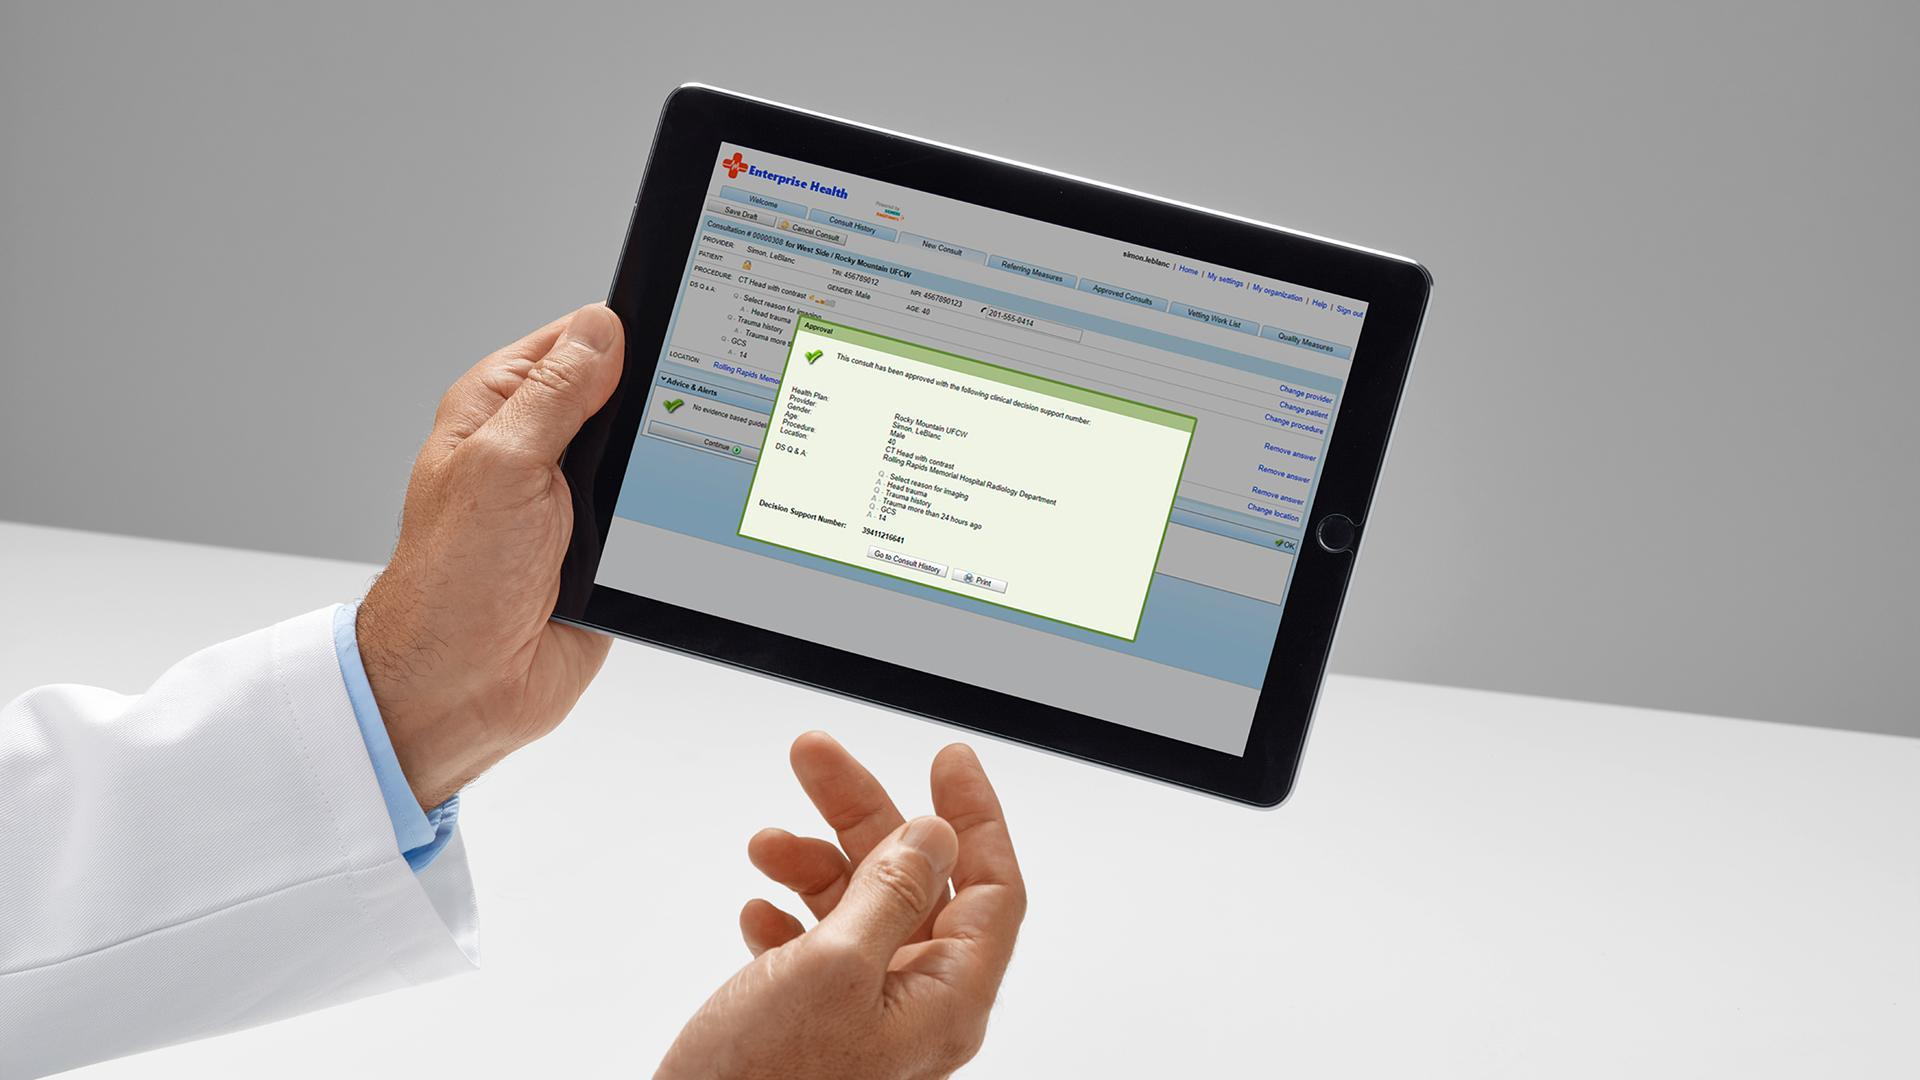 Easy online access to clinical decision support